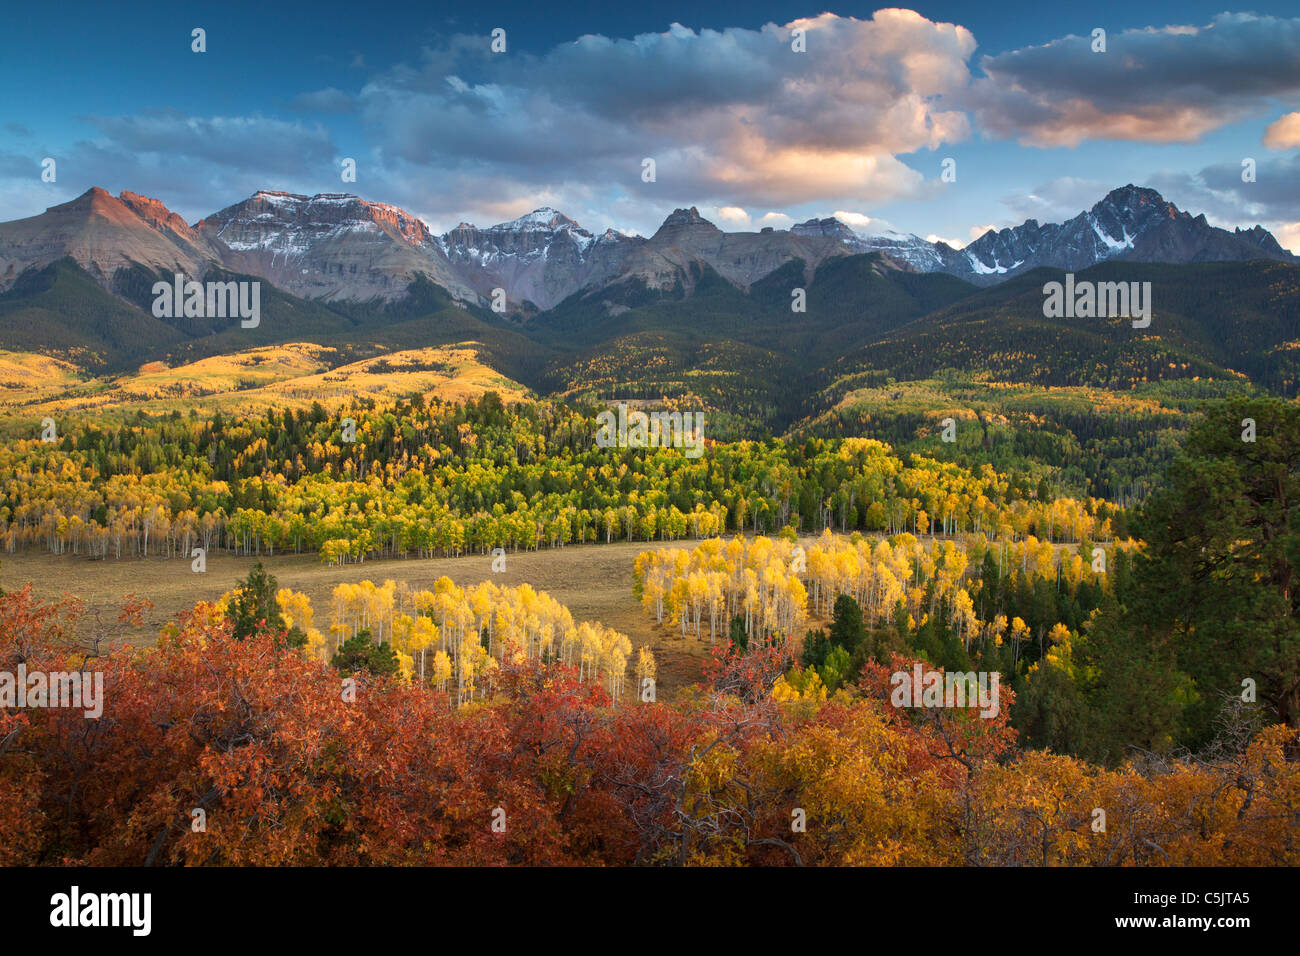 Autumn colors and the Sneffels Range, San Juan Mountains, Colorado. - Stock Image